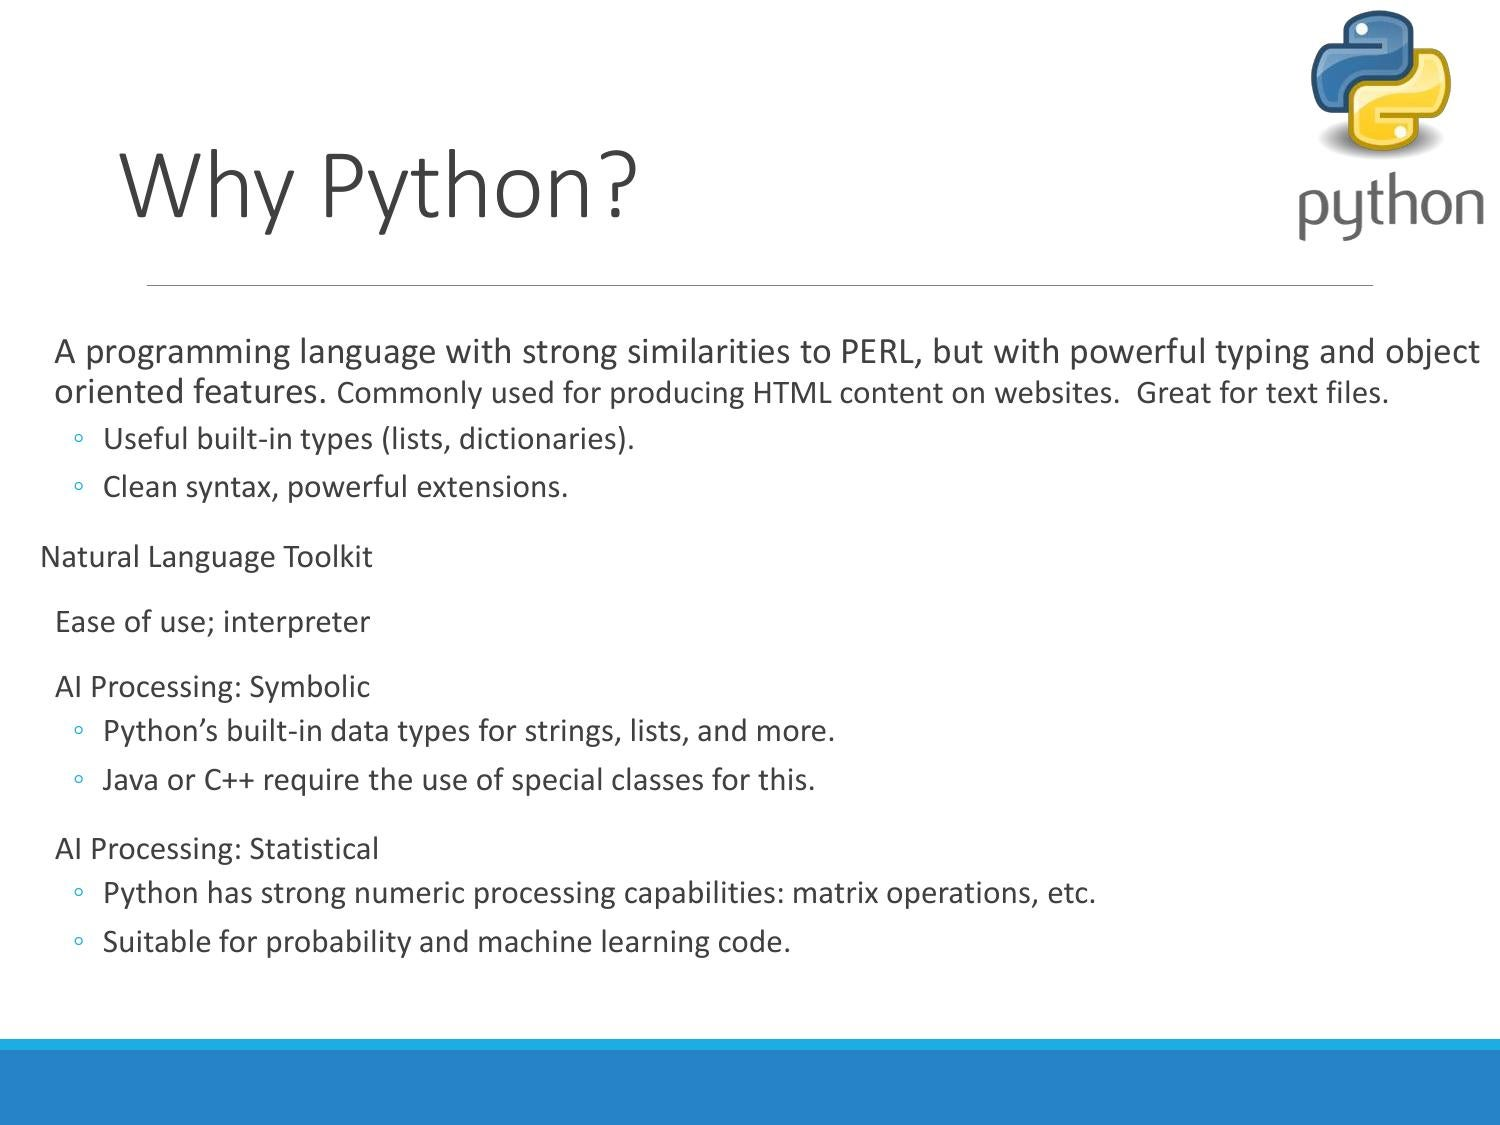 Introduction to phython programming by amcsquarelearning - issuu